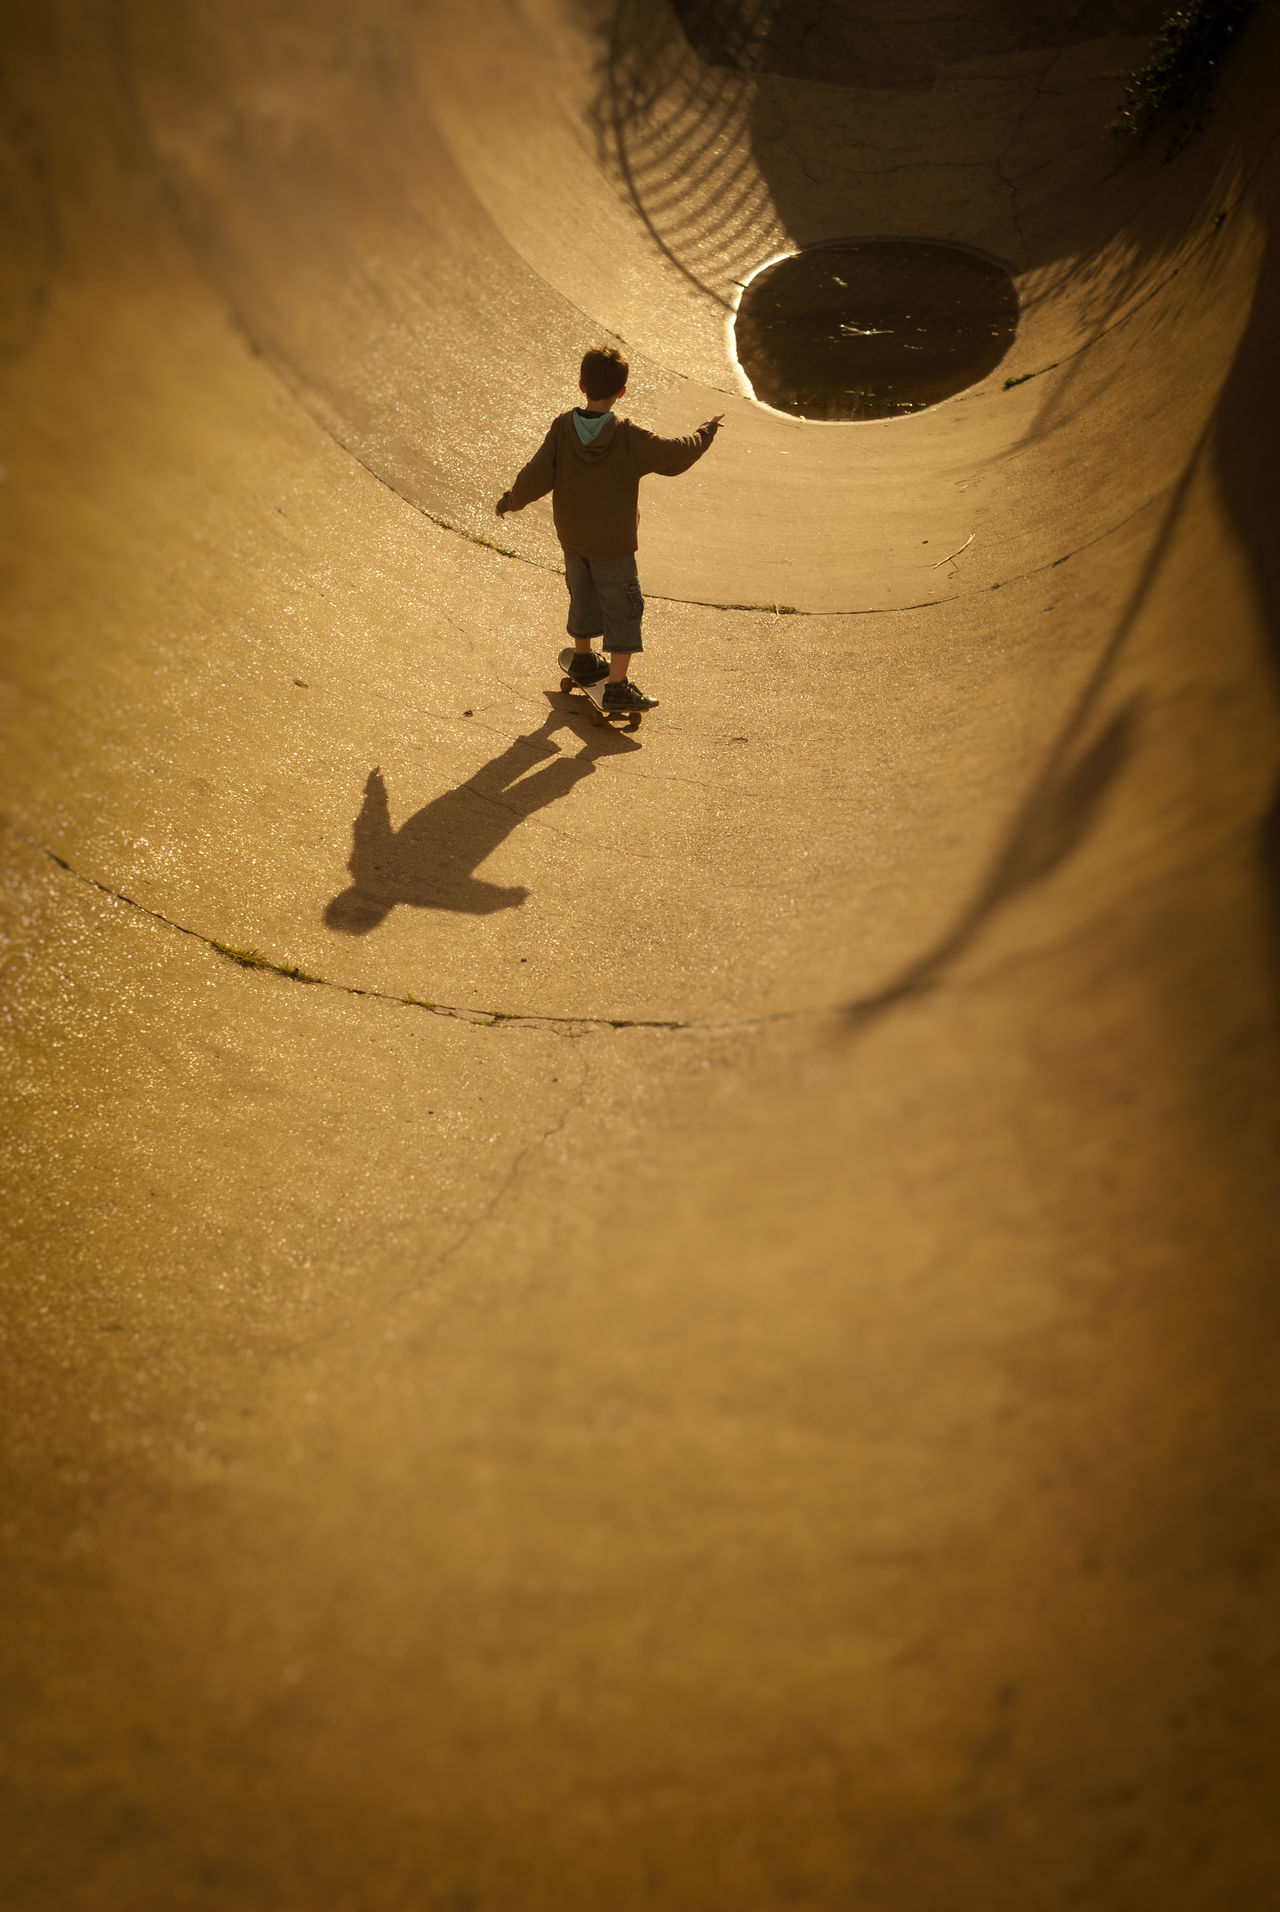 Young Skateboarder at Skate Park Botany Childhood Concrete Day One Person Outdoors Park Puddle Skate Skateboard Skateboarder Skateboarding Skatepark Sunlight